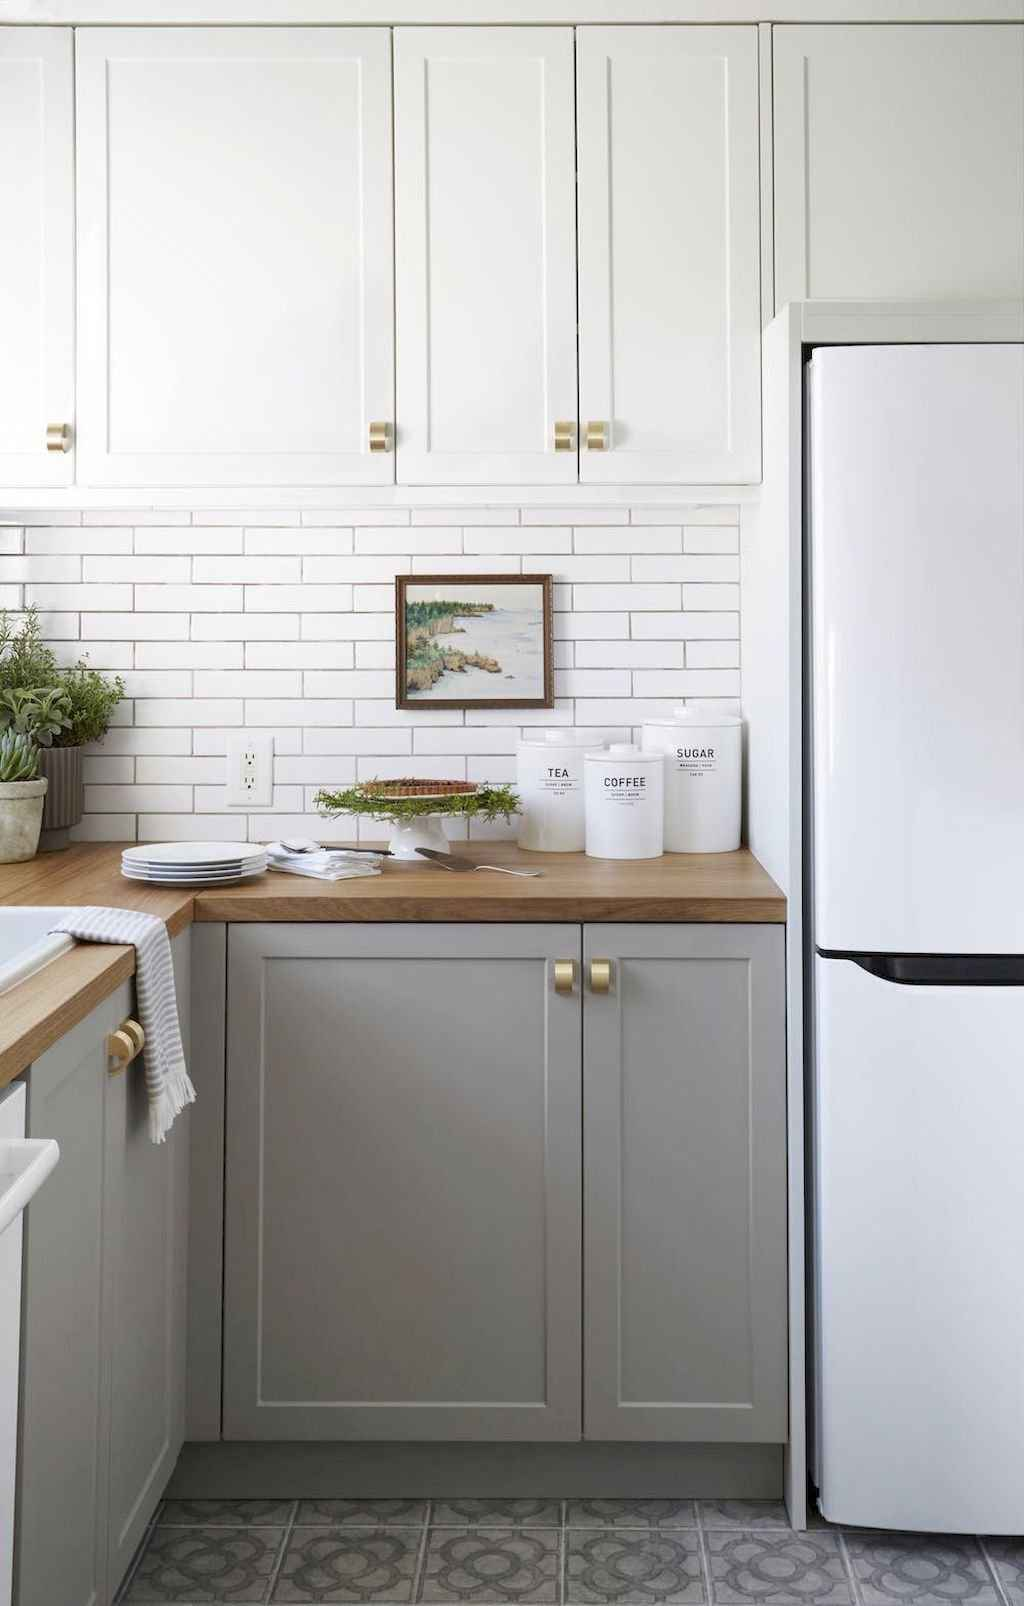 50 Cool Apartment Kitchen Rental Decor Ideas and Makeover (14 ... Ideas For Decoration Rental Kitchen on home decoration for kitchen, paint ideas for kitchen, sport ideas for kitchen, cute ideas for kitchen, storage ideas for kitchen, ideas to decorate your kitchen, kitchen ideas for kitchen, wall decorations for kitchen, flooring ideas for kitchen, christmas crafts for kitchen, home decor kitchen, faux painting ideas for kitchen, desk ideas for kitchen, food for kitchen, diy for kitchen, dorm room ideas for kitchen, vintage ideas for kitchen, party for kitchen, candles for kitchen, home ideas for kitchen,